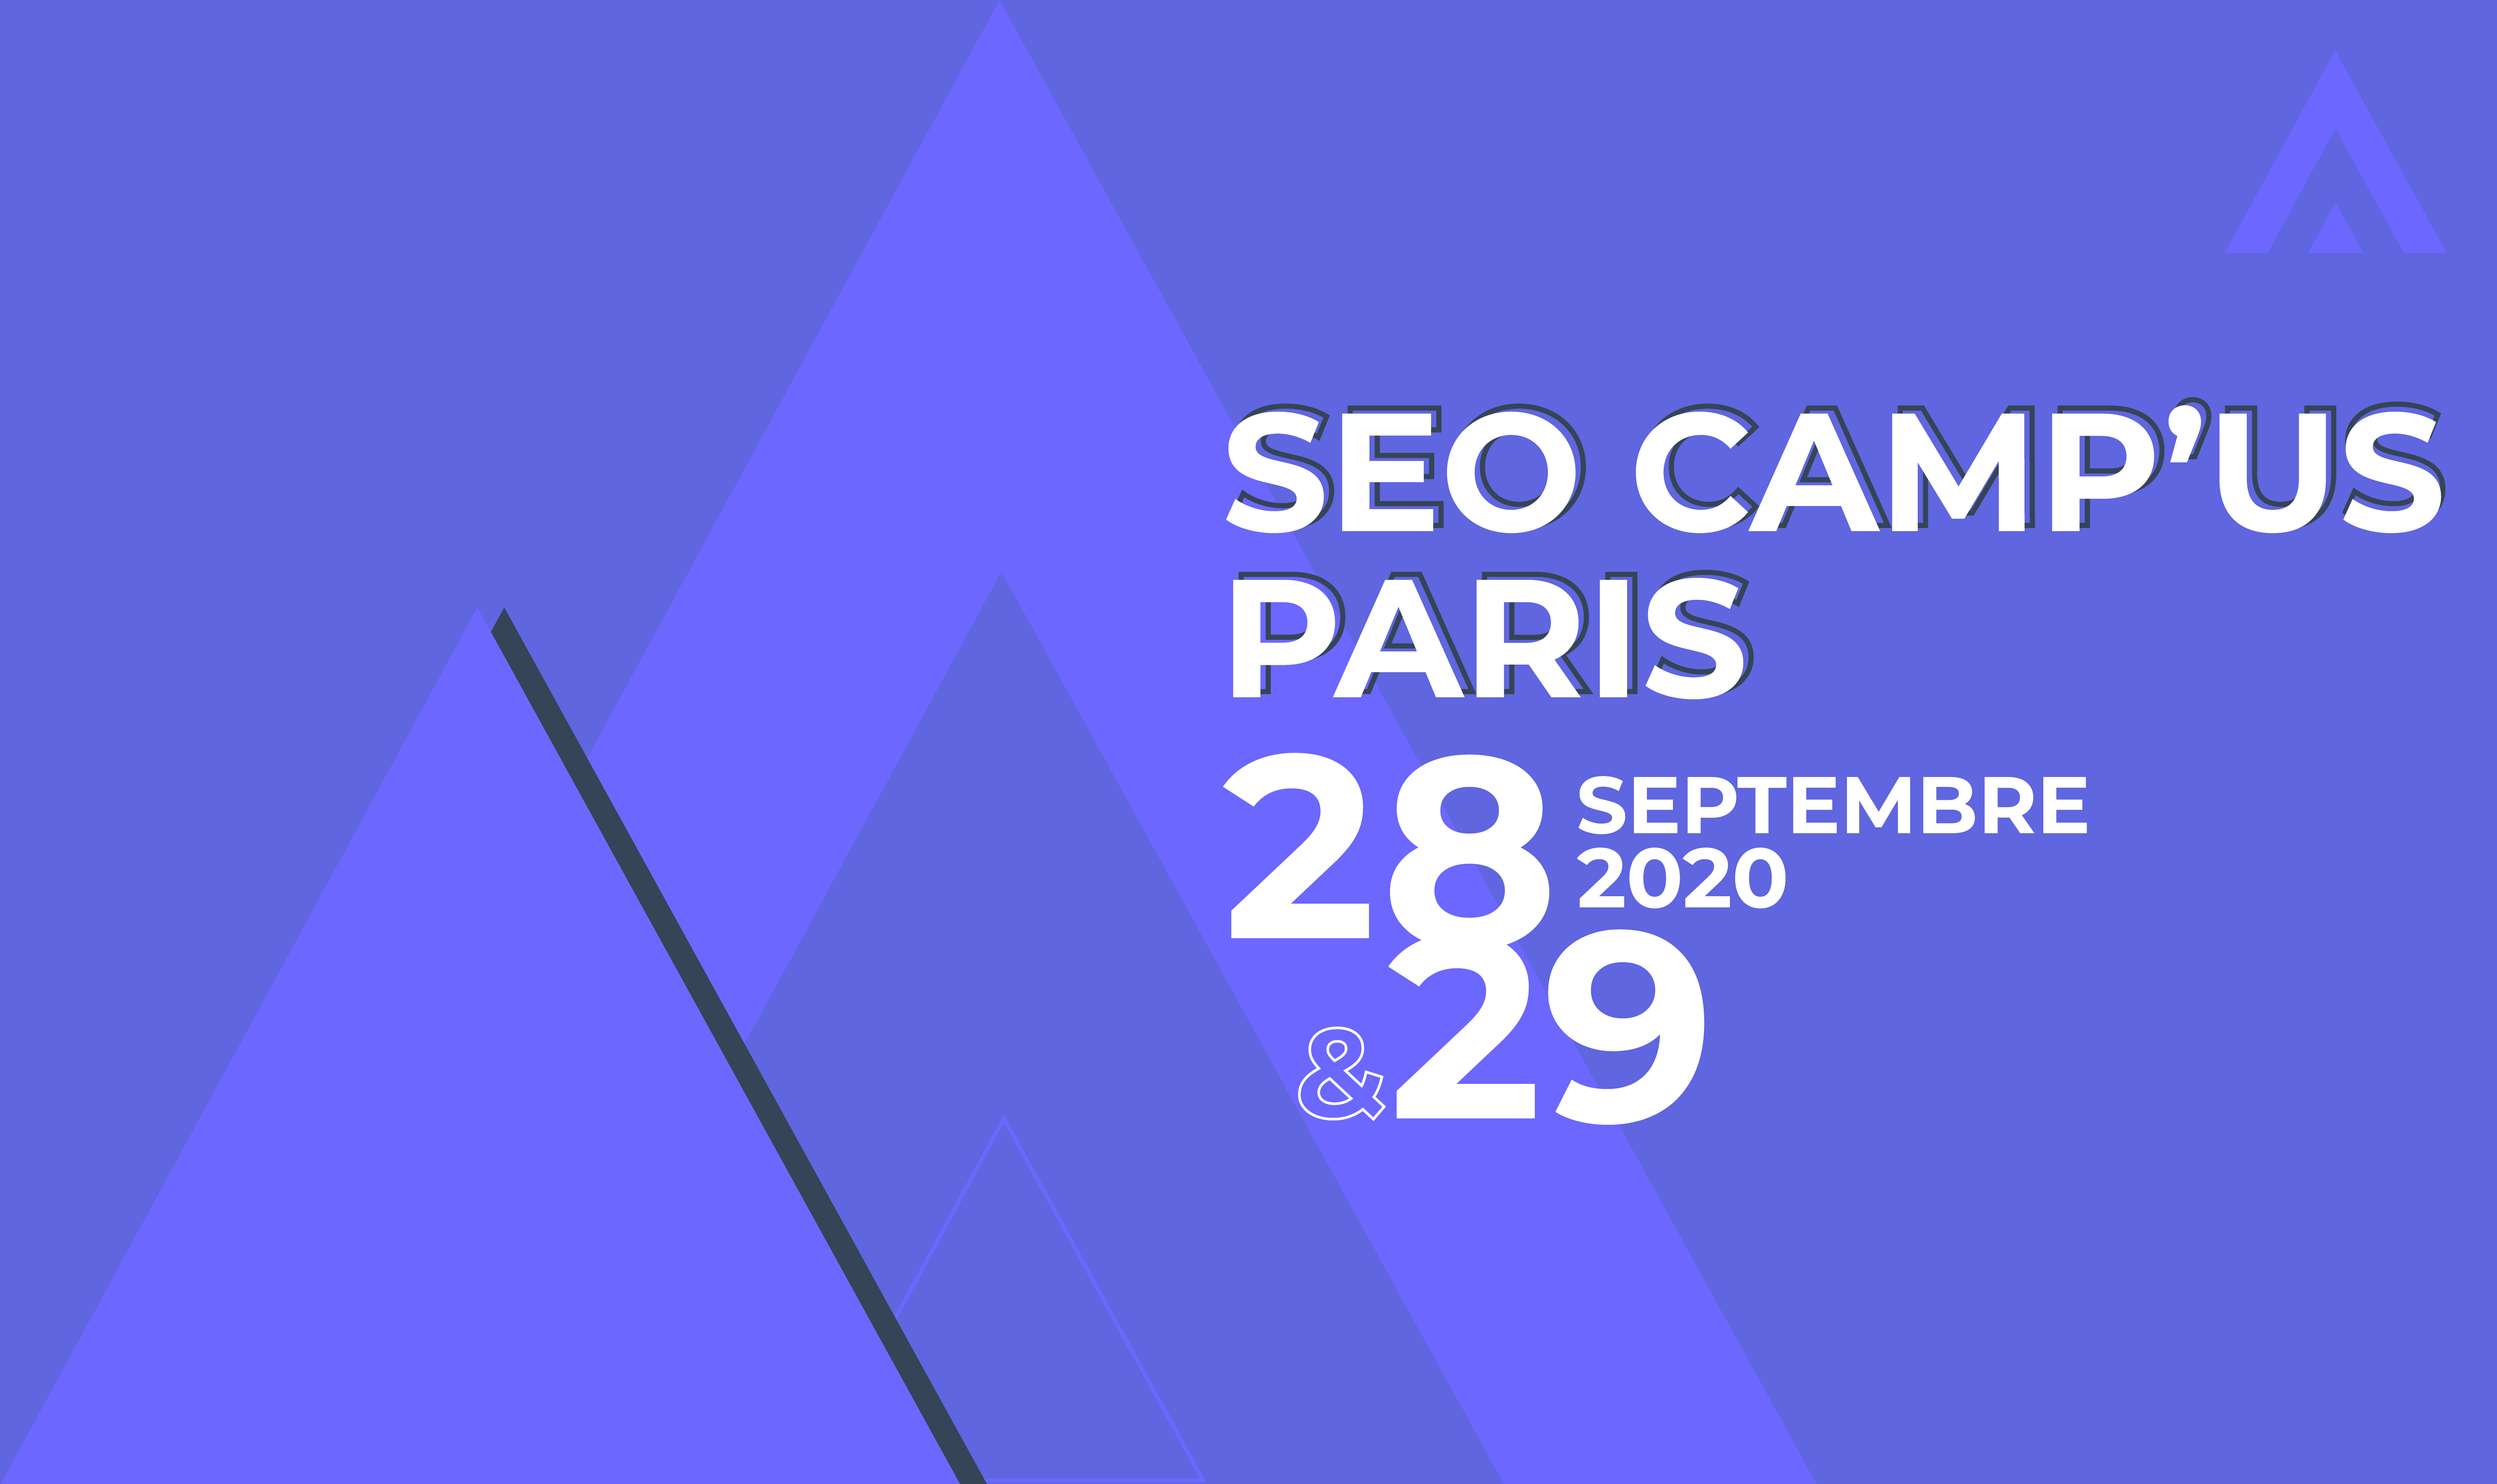 SEO Camp'US Paris 2020